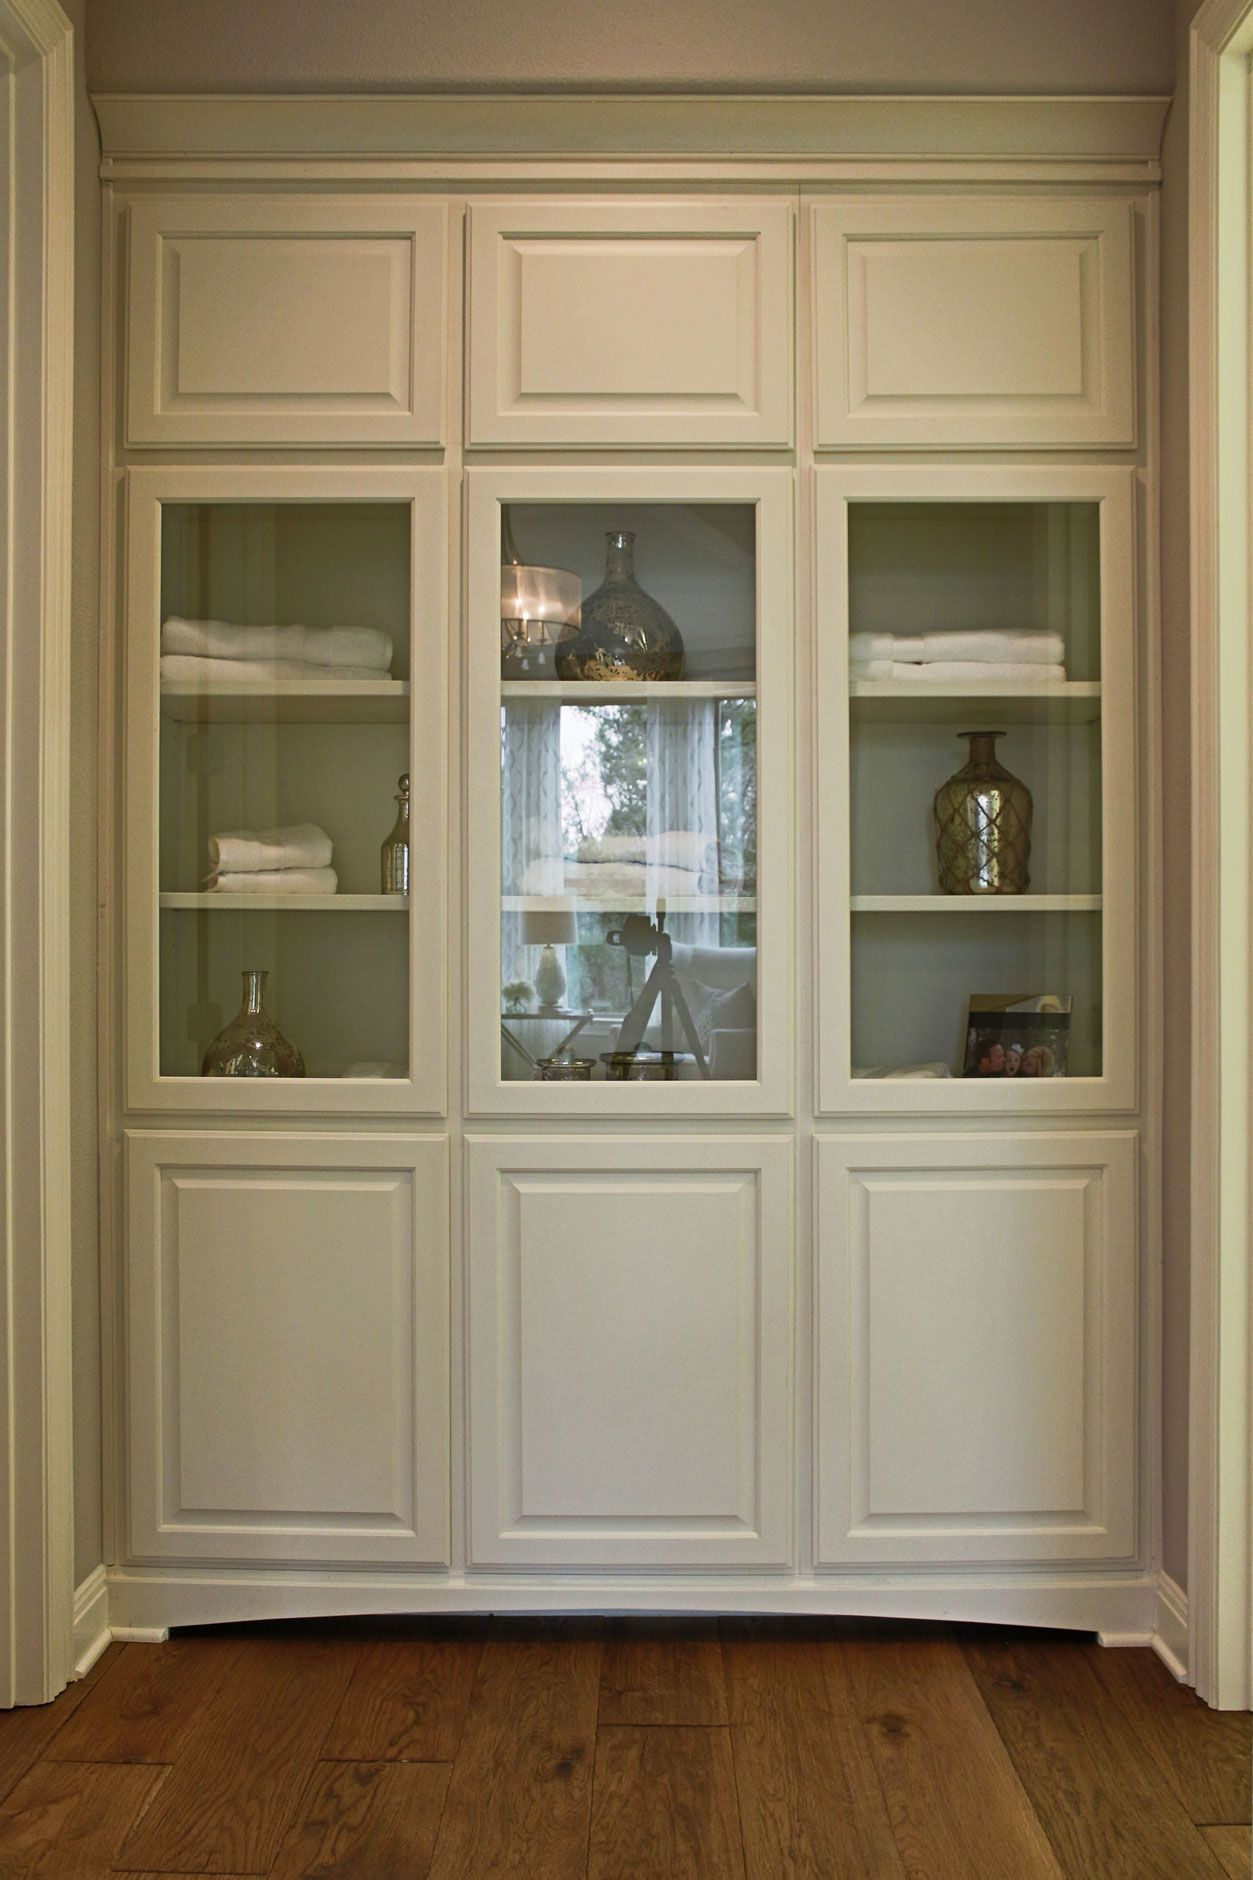 Kitchen Cabinets To Ceiling With Glass Burrows Cabinets 39 Bathroom Floor To Ceiling Linen Cabinets